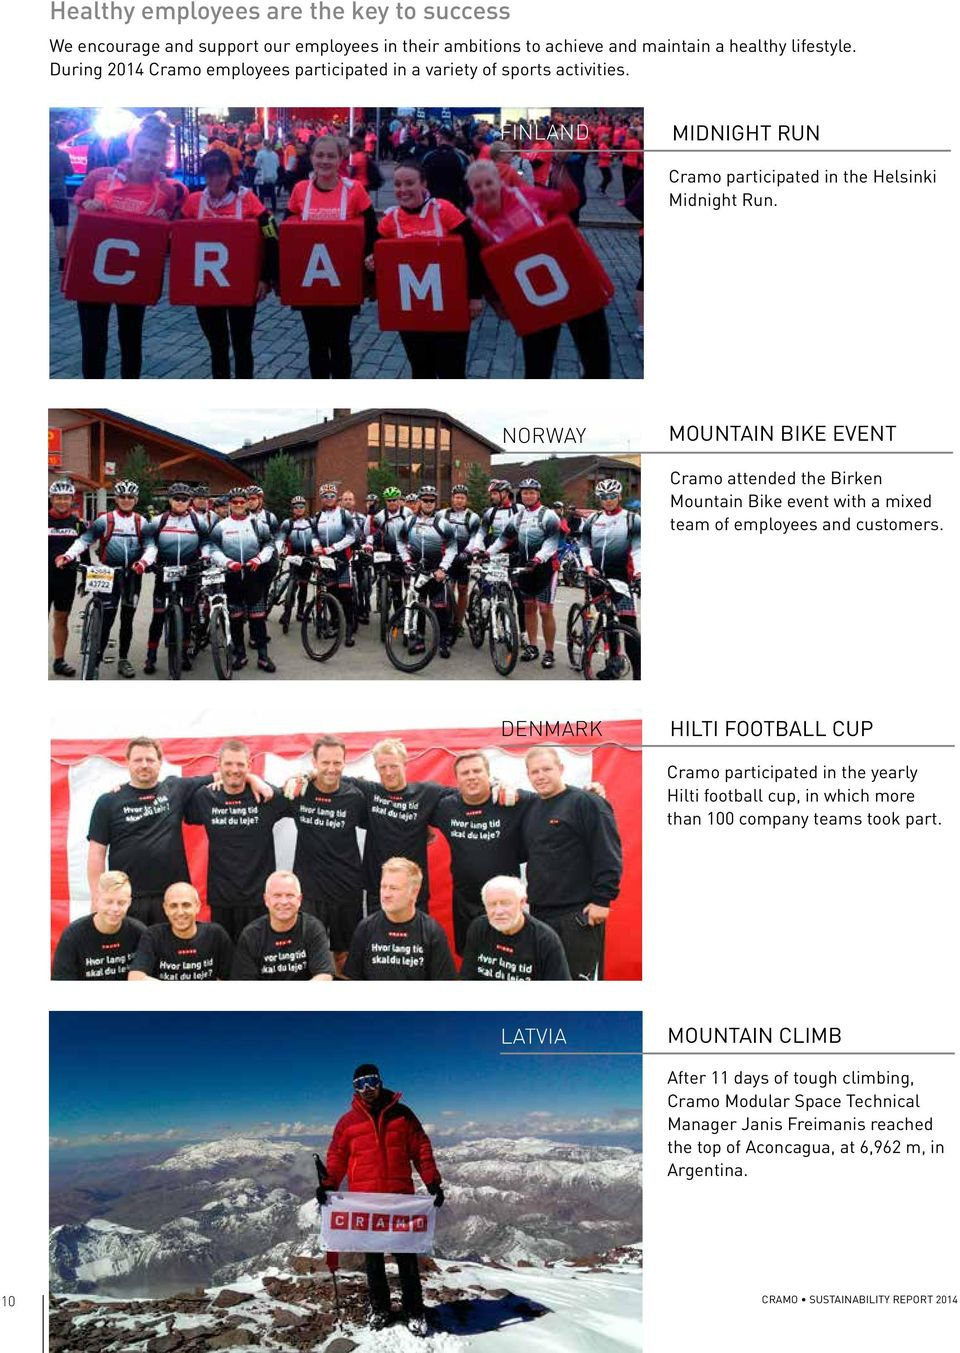 NORWAY MOUNTAIN BIKE EVENT Cramo attended the Birken Mountain Bike event with a mixed team of employees and customers.